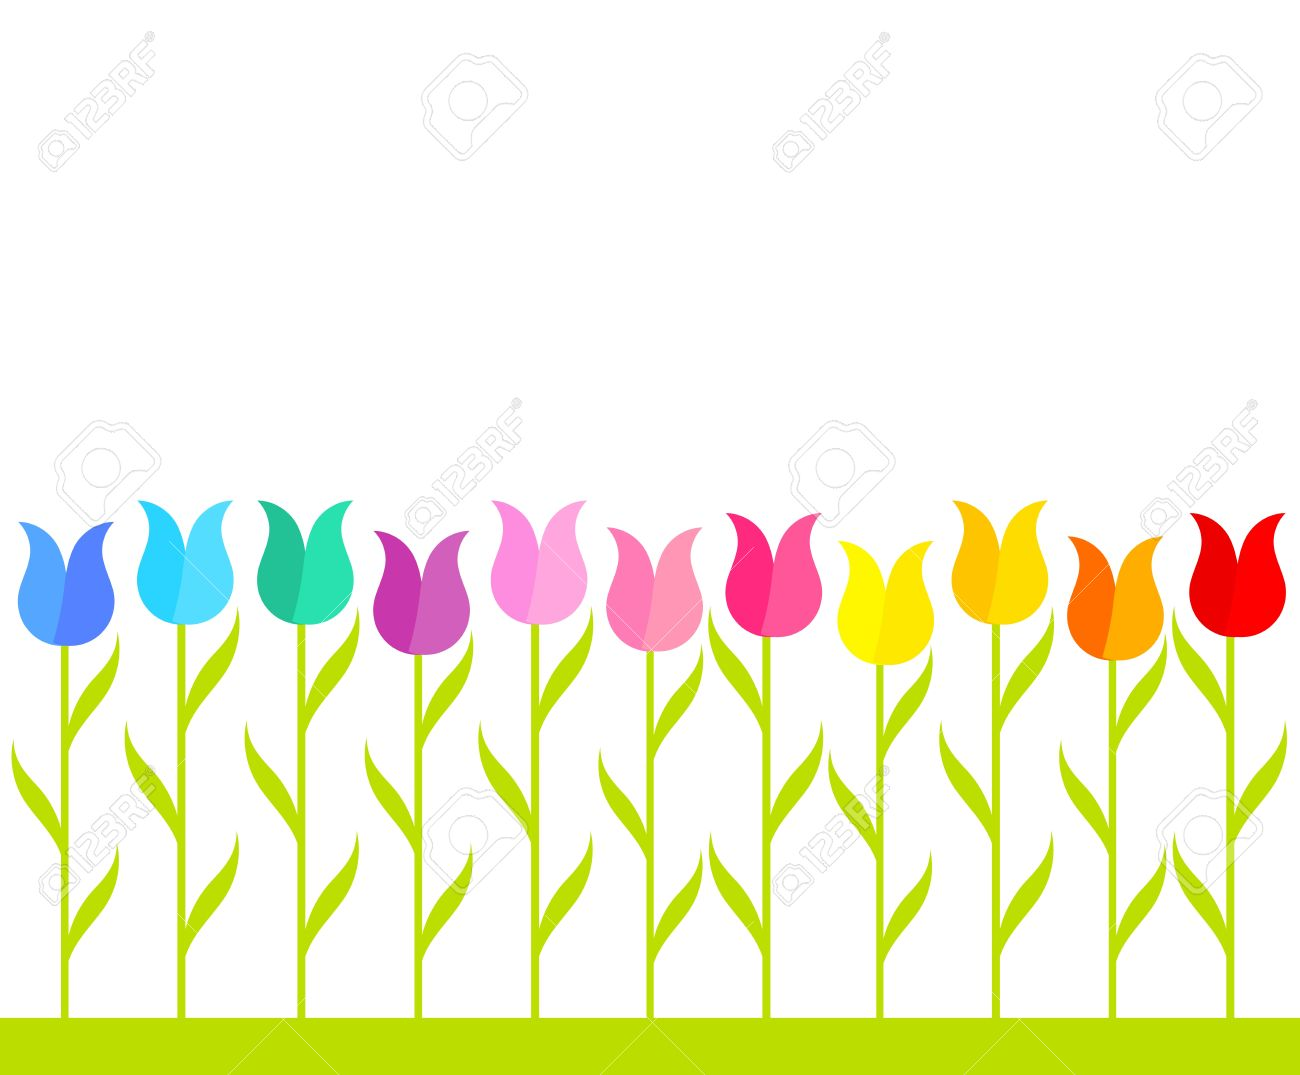 Flower row clipart image freeuse download Row Of Multicolor Tulip Flowers. Vector Illustration Royalty Free ... image freeuse download